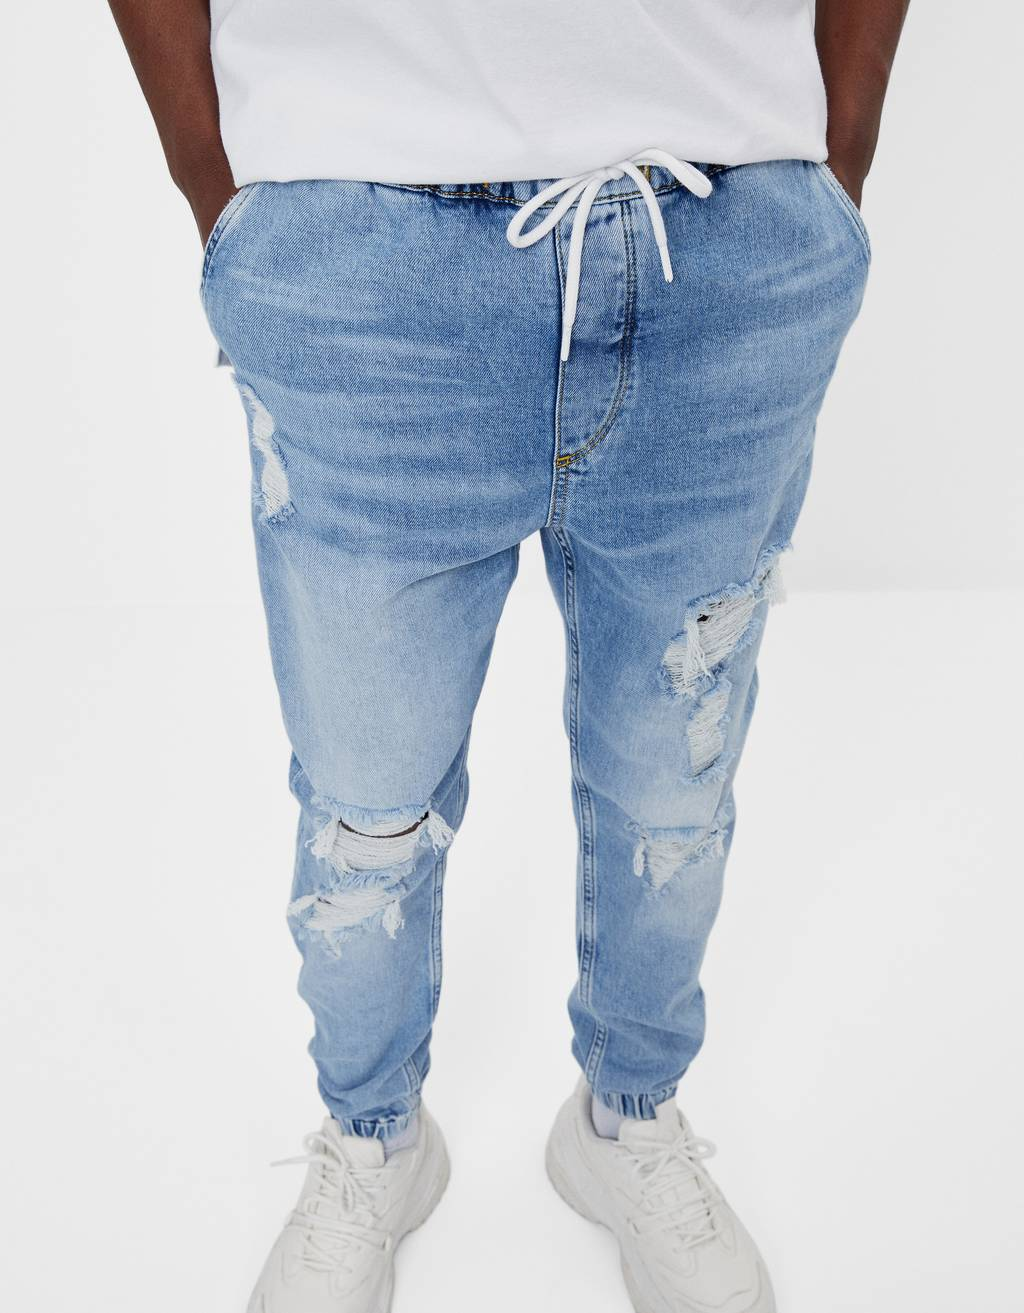 Ripped Jogger Jeans Shoes Bershka Dominican Republic